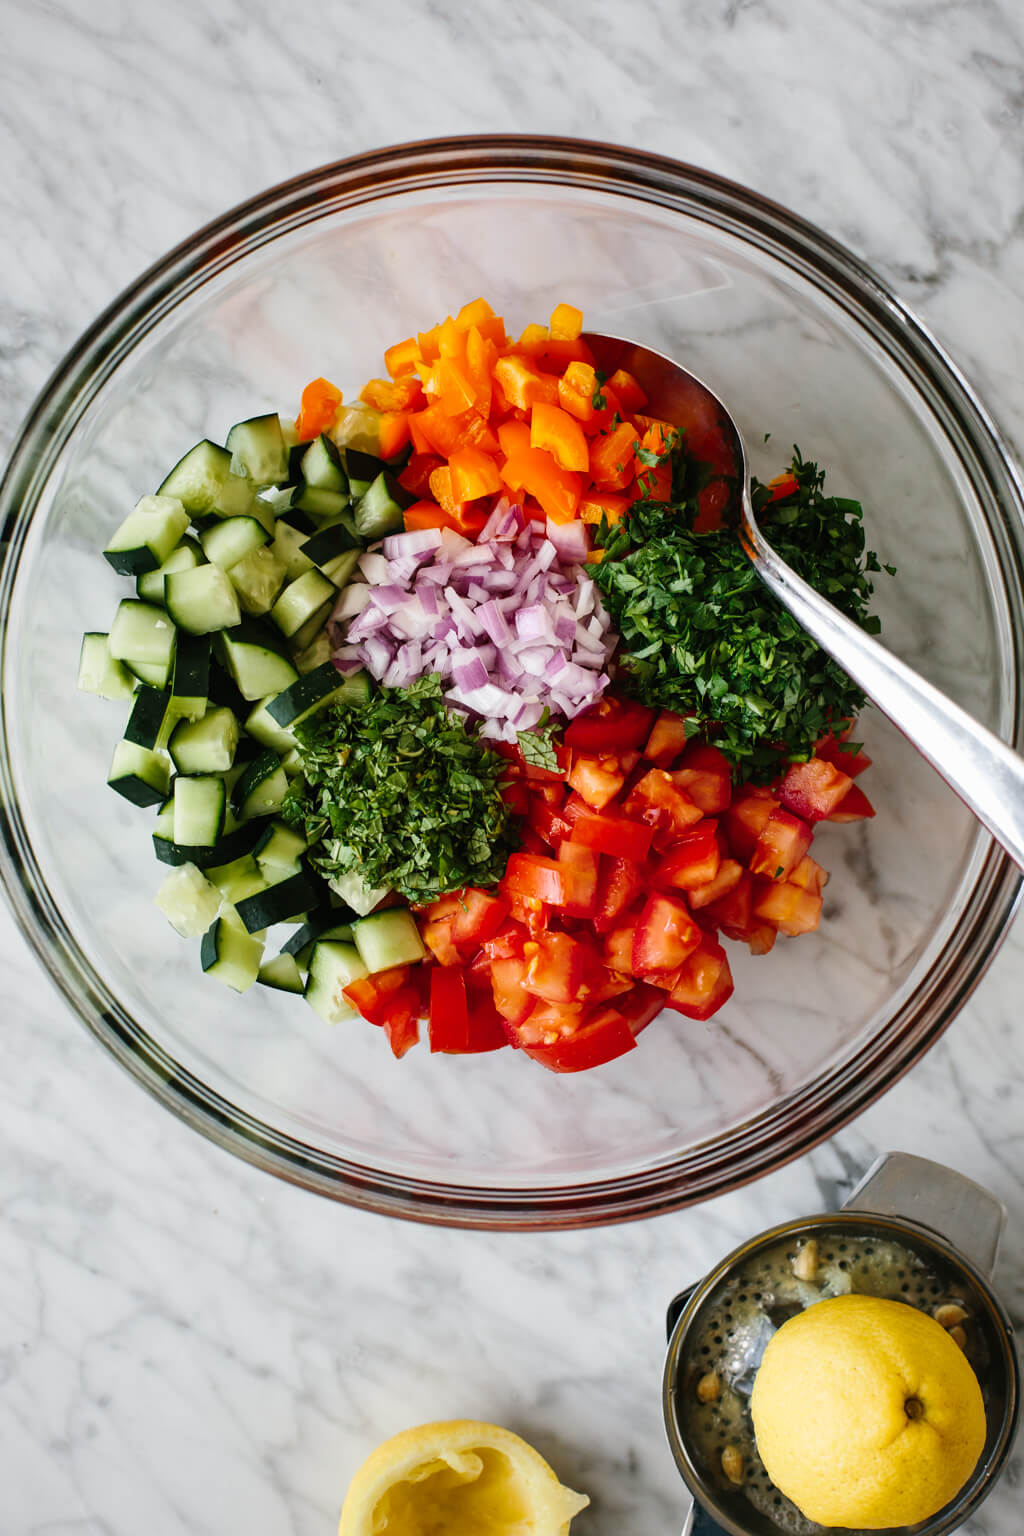 Israeli salad ingredients in a mixing bowl.